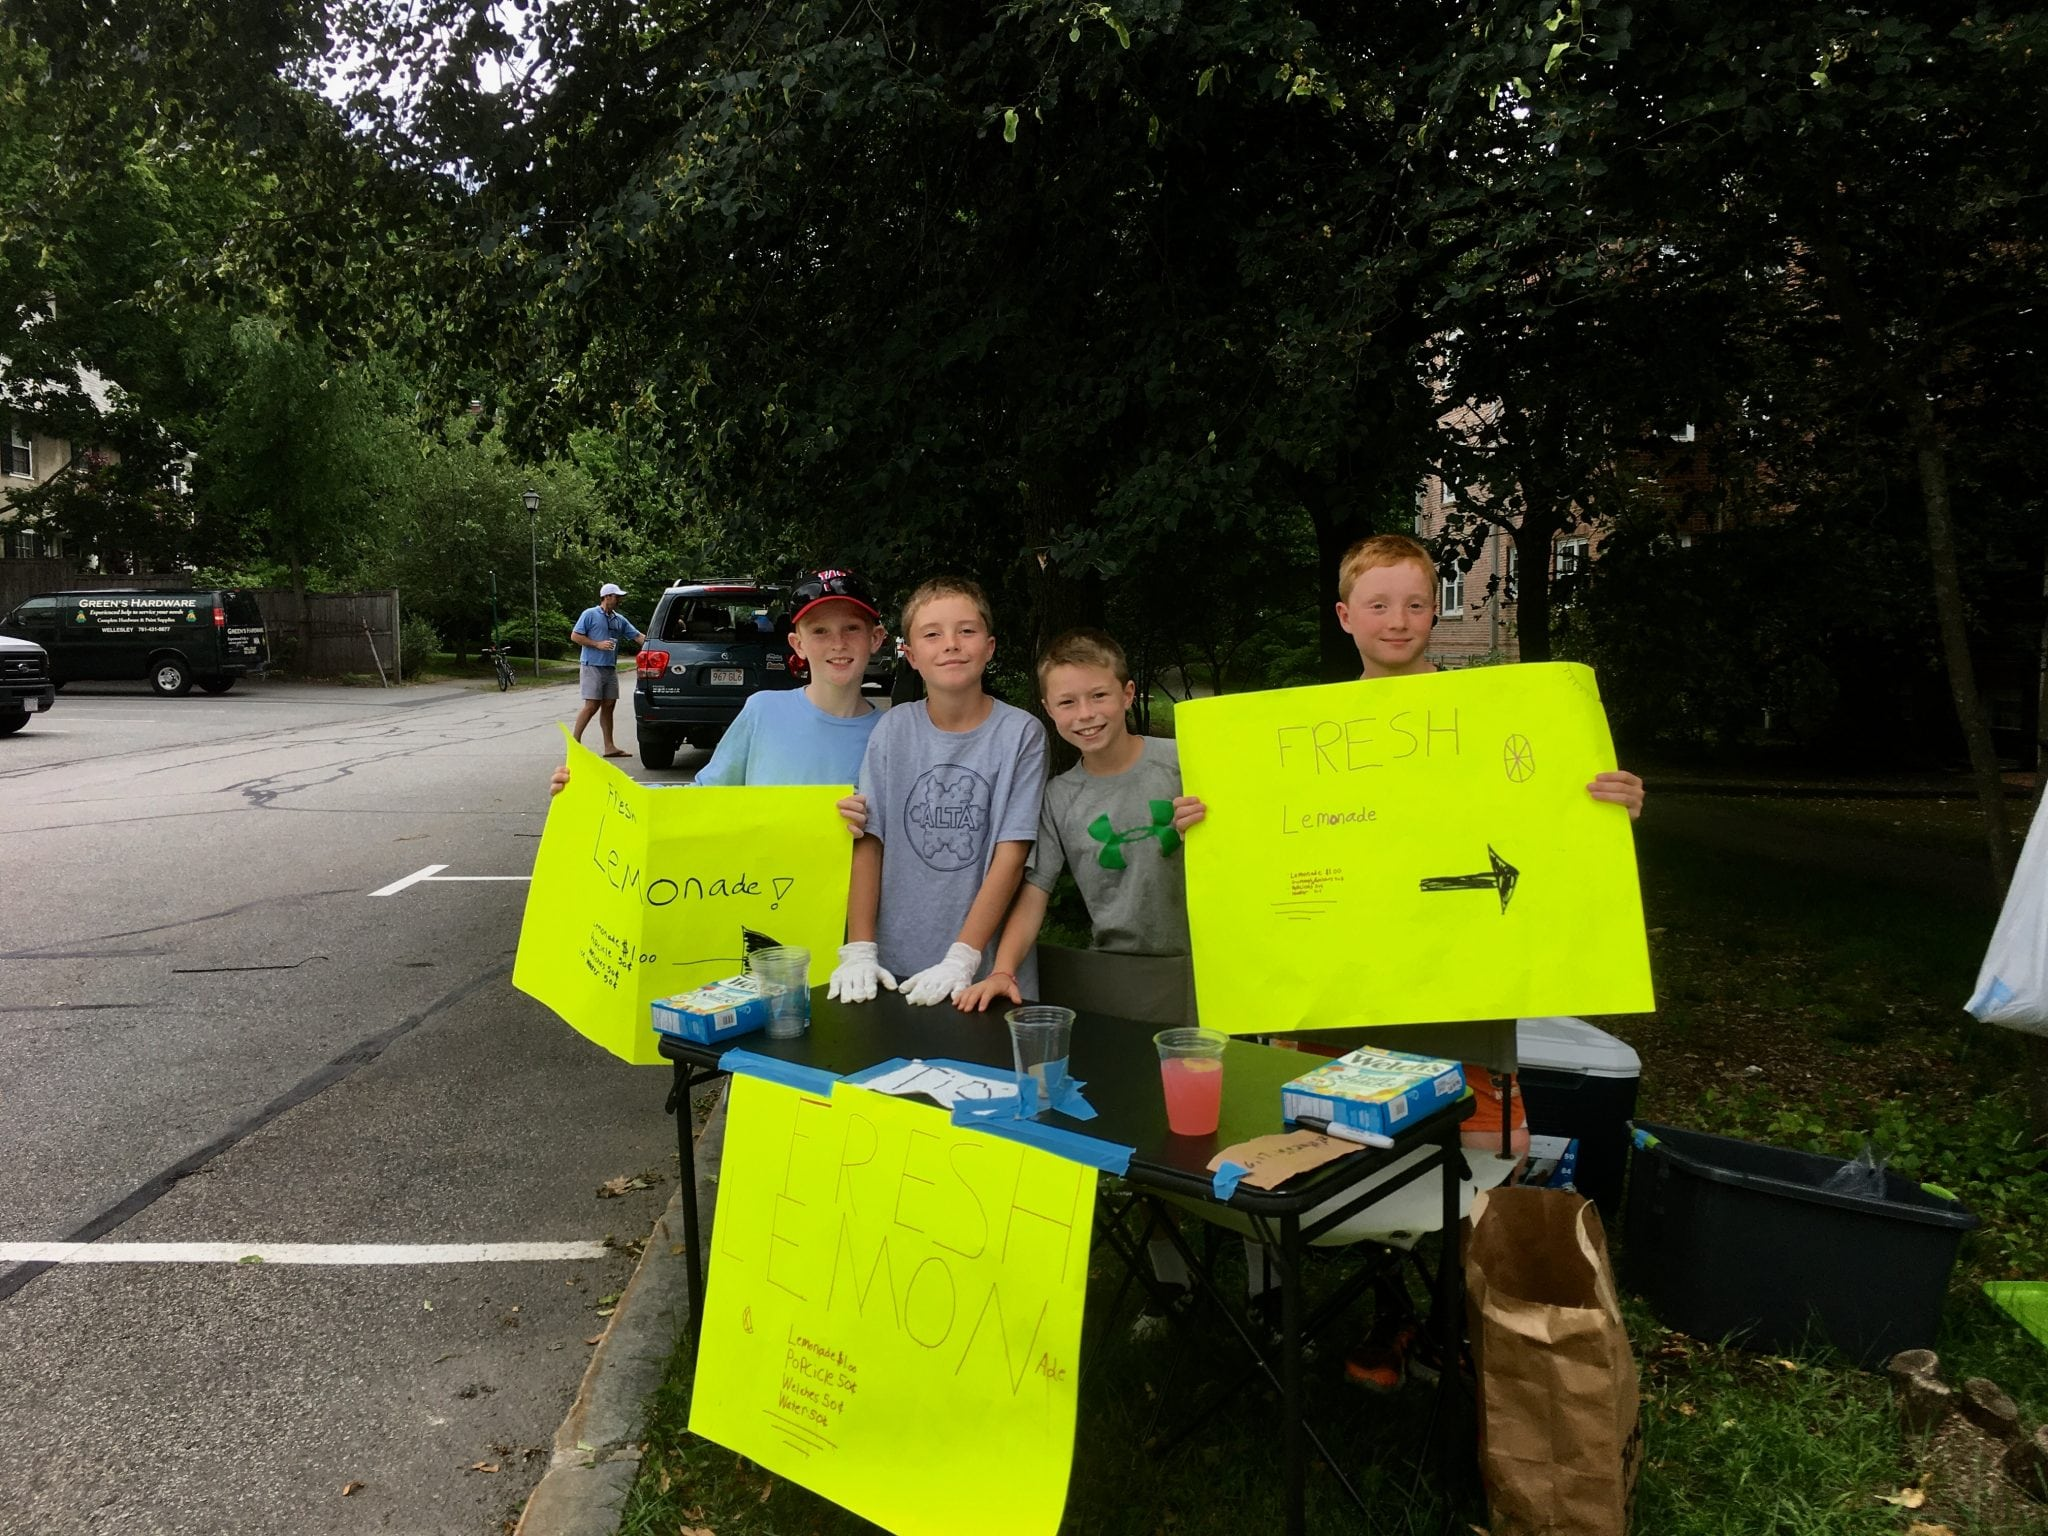 Wellesley lemonade stand